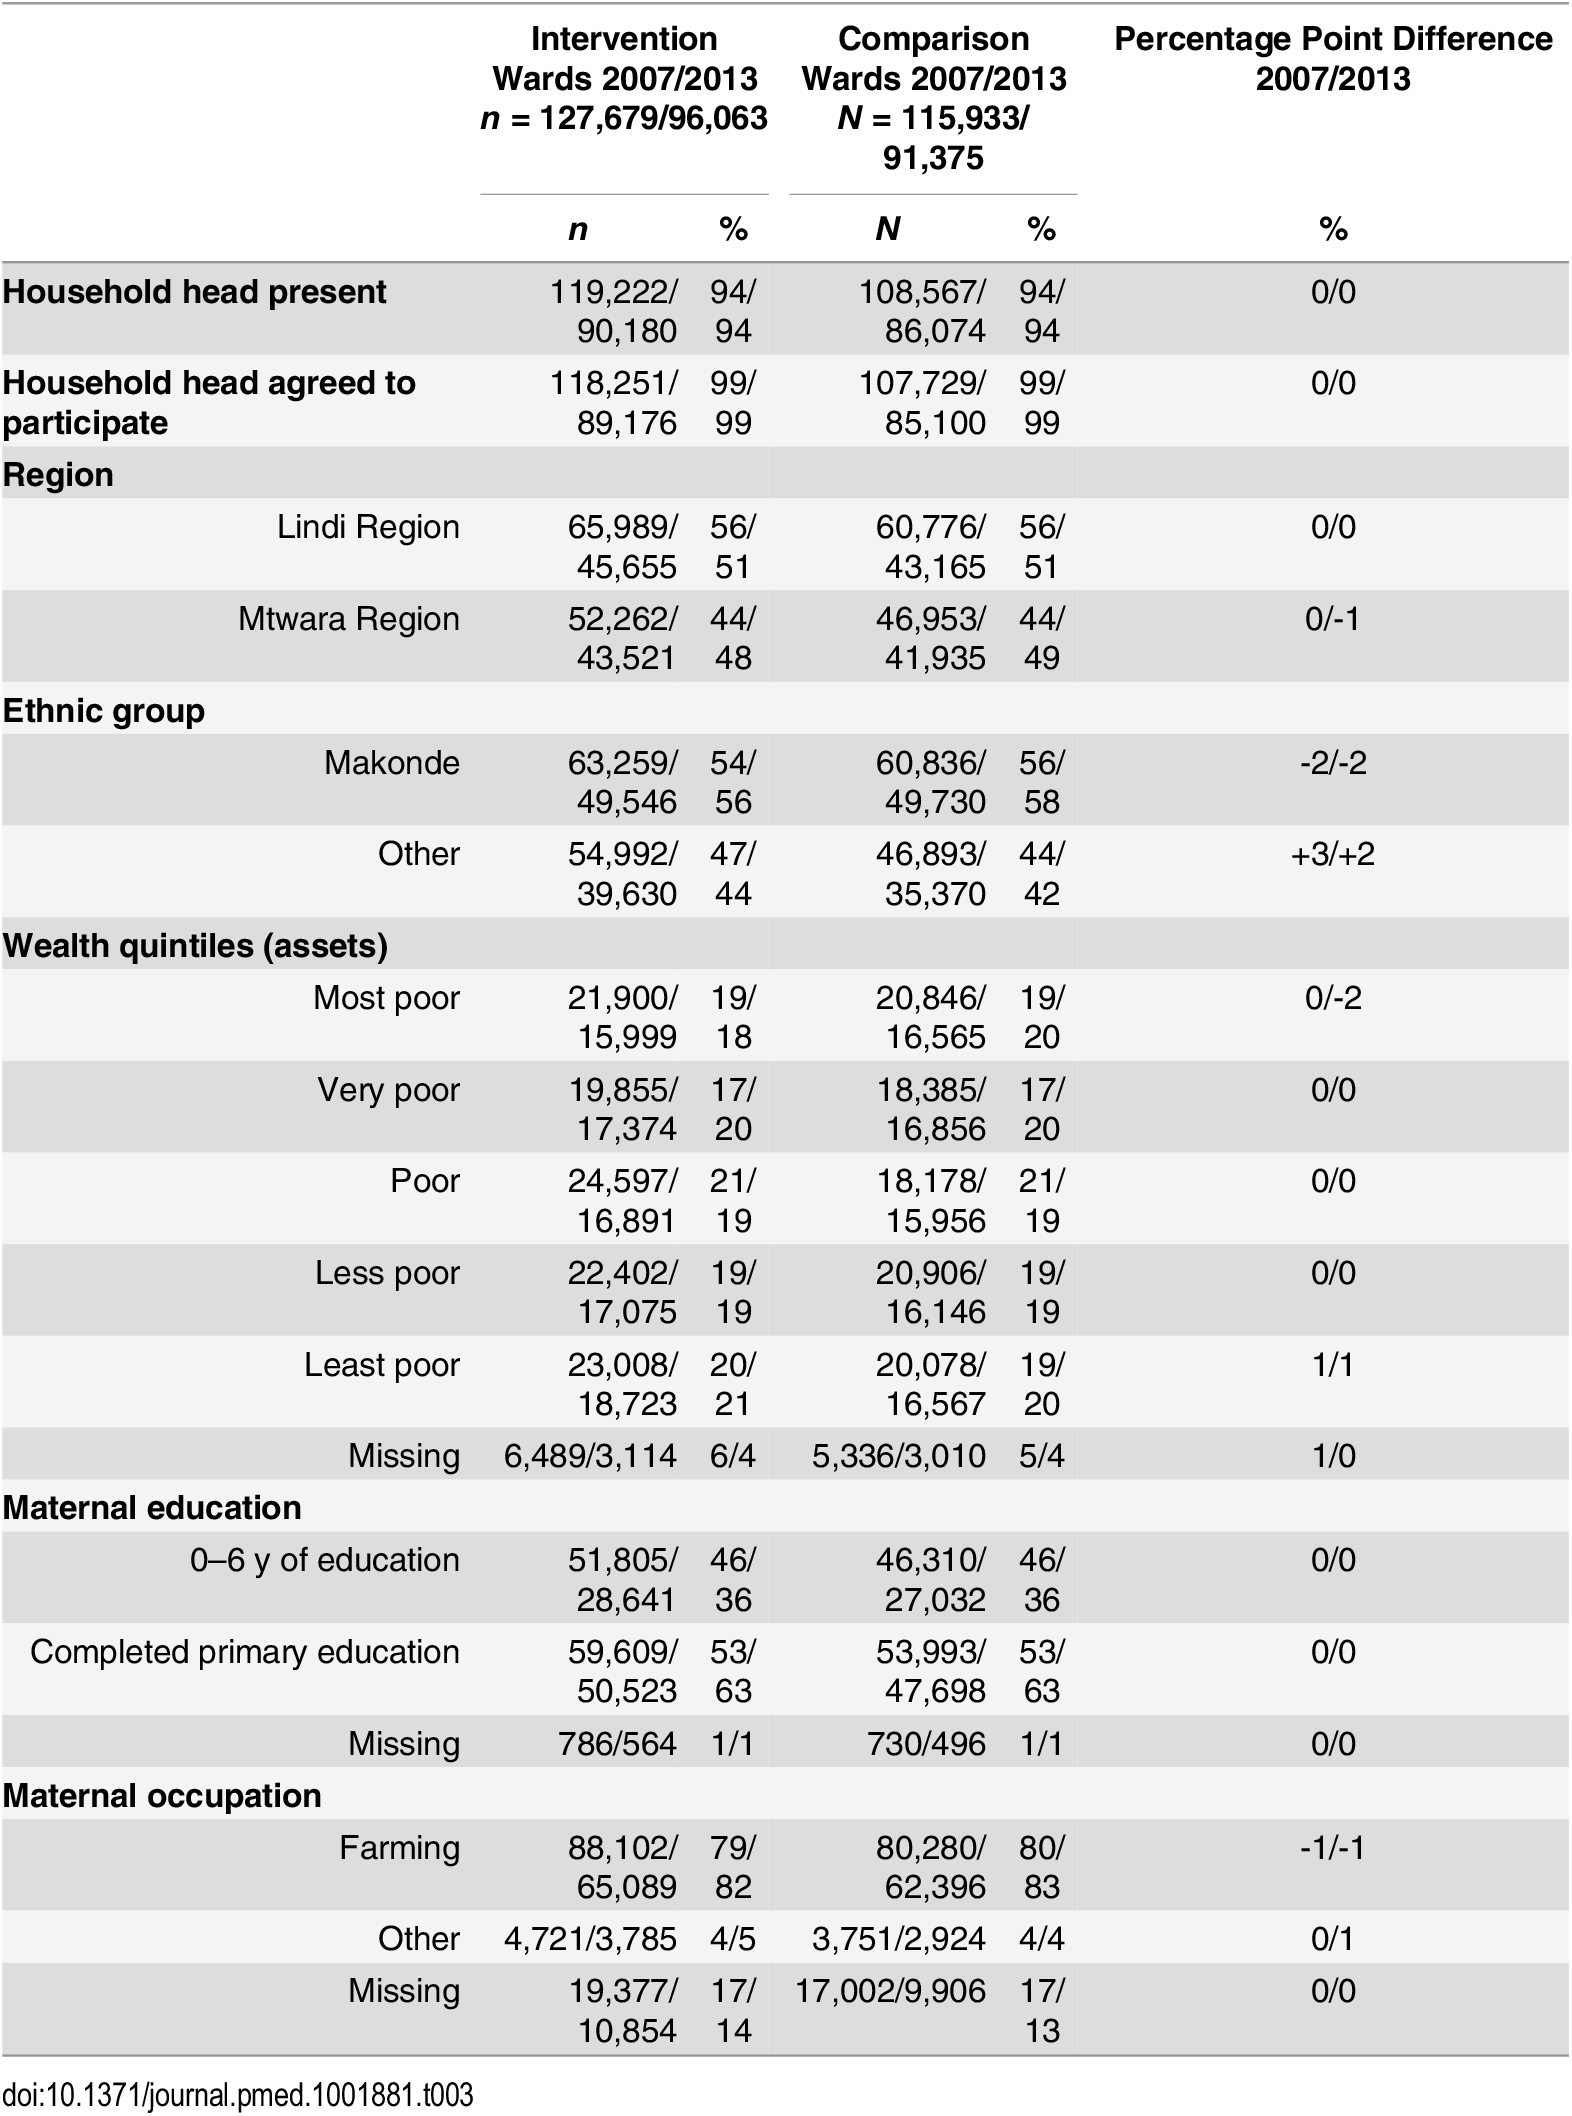 Characteristics of respondents of intervention and comparison wards in the 2007 and 2013 surveys.